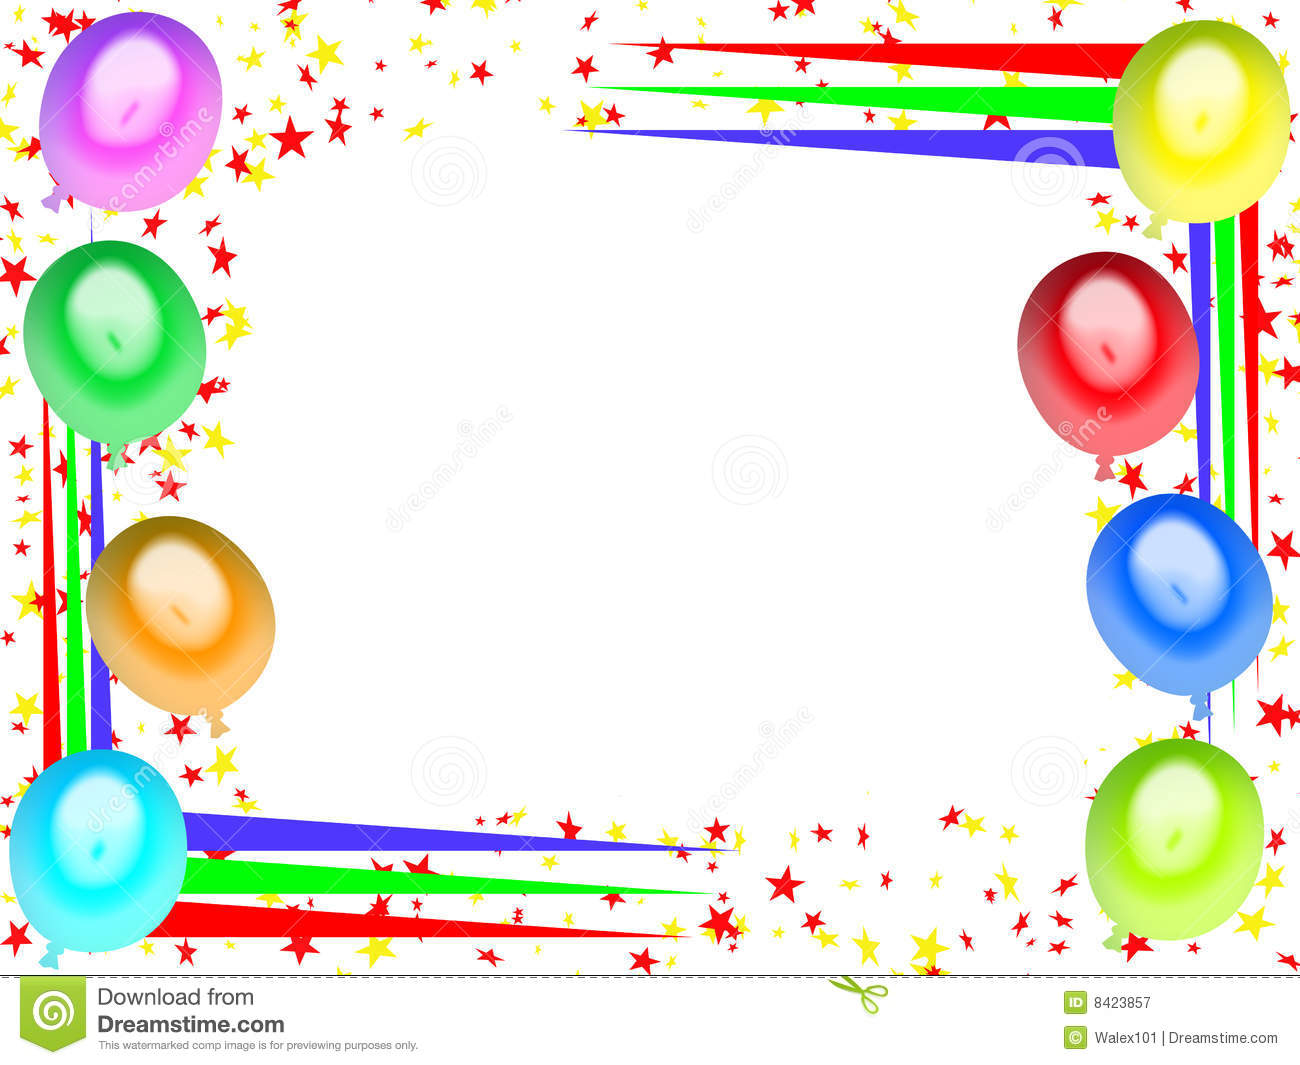 happy birthday card clipart ; happy-birthday-card-06-8423857